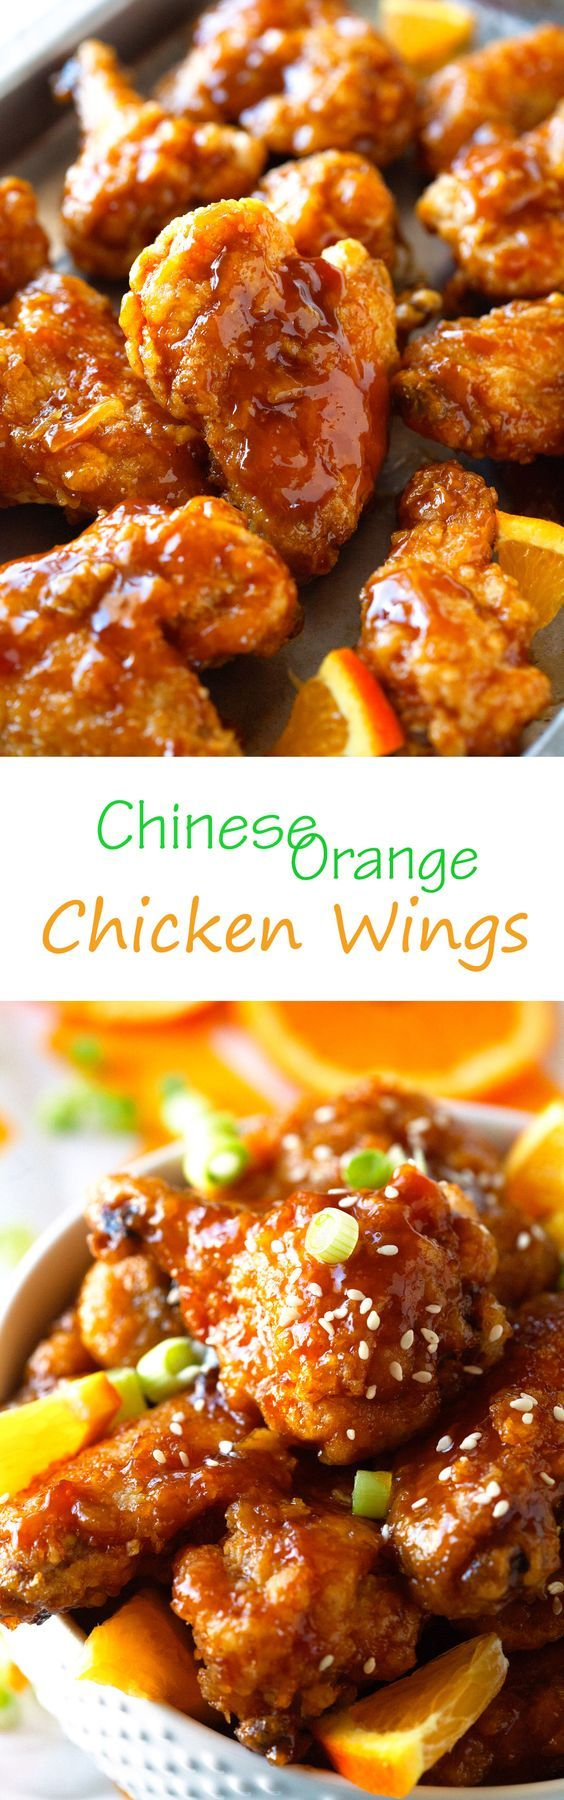 Chinese Orange Chicken Wings - always a Game Day Favorite. You won't believe how quickly they disappear!